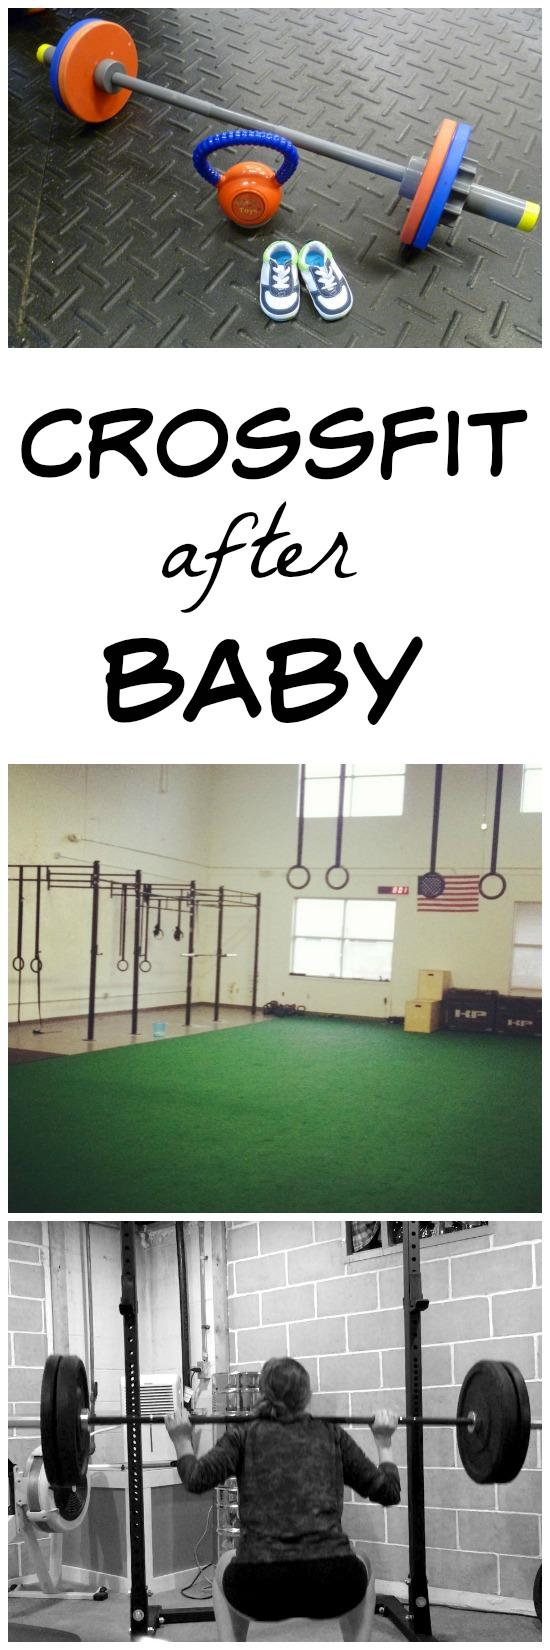 Advice for getting back into Crossfit after having a baby.